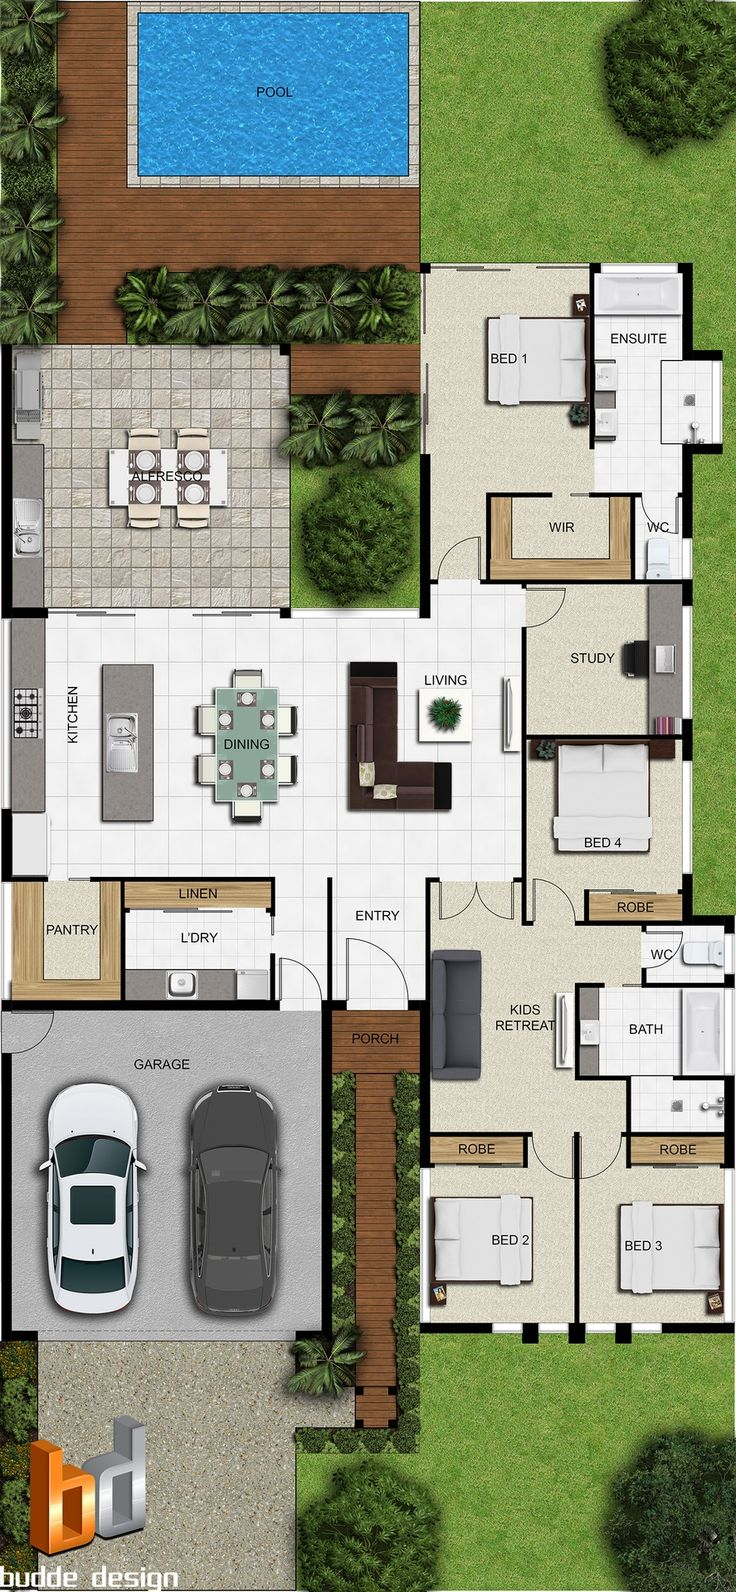 75 best sims freeplay ideas images on Pinterest | Floor plans, House ...